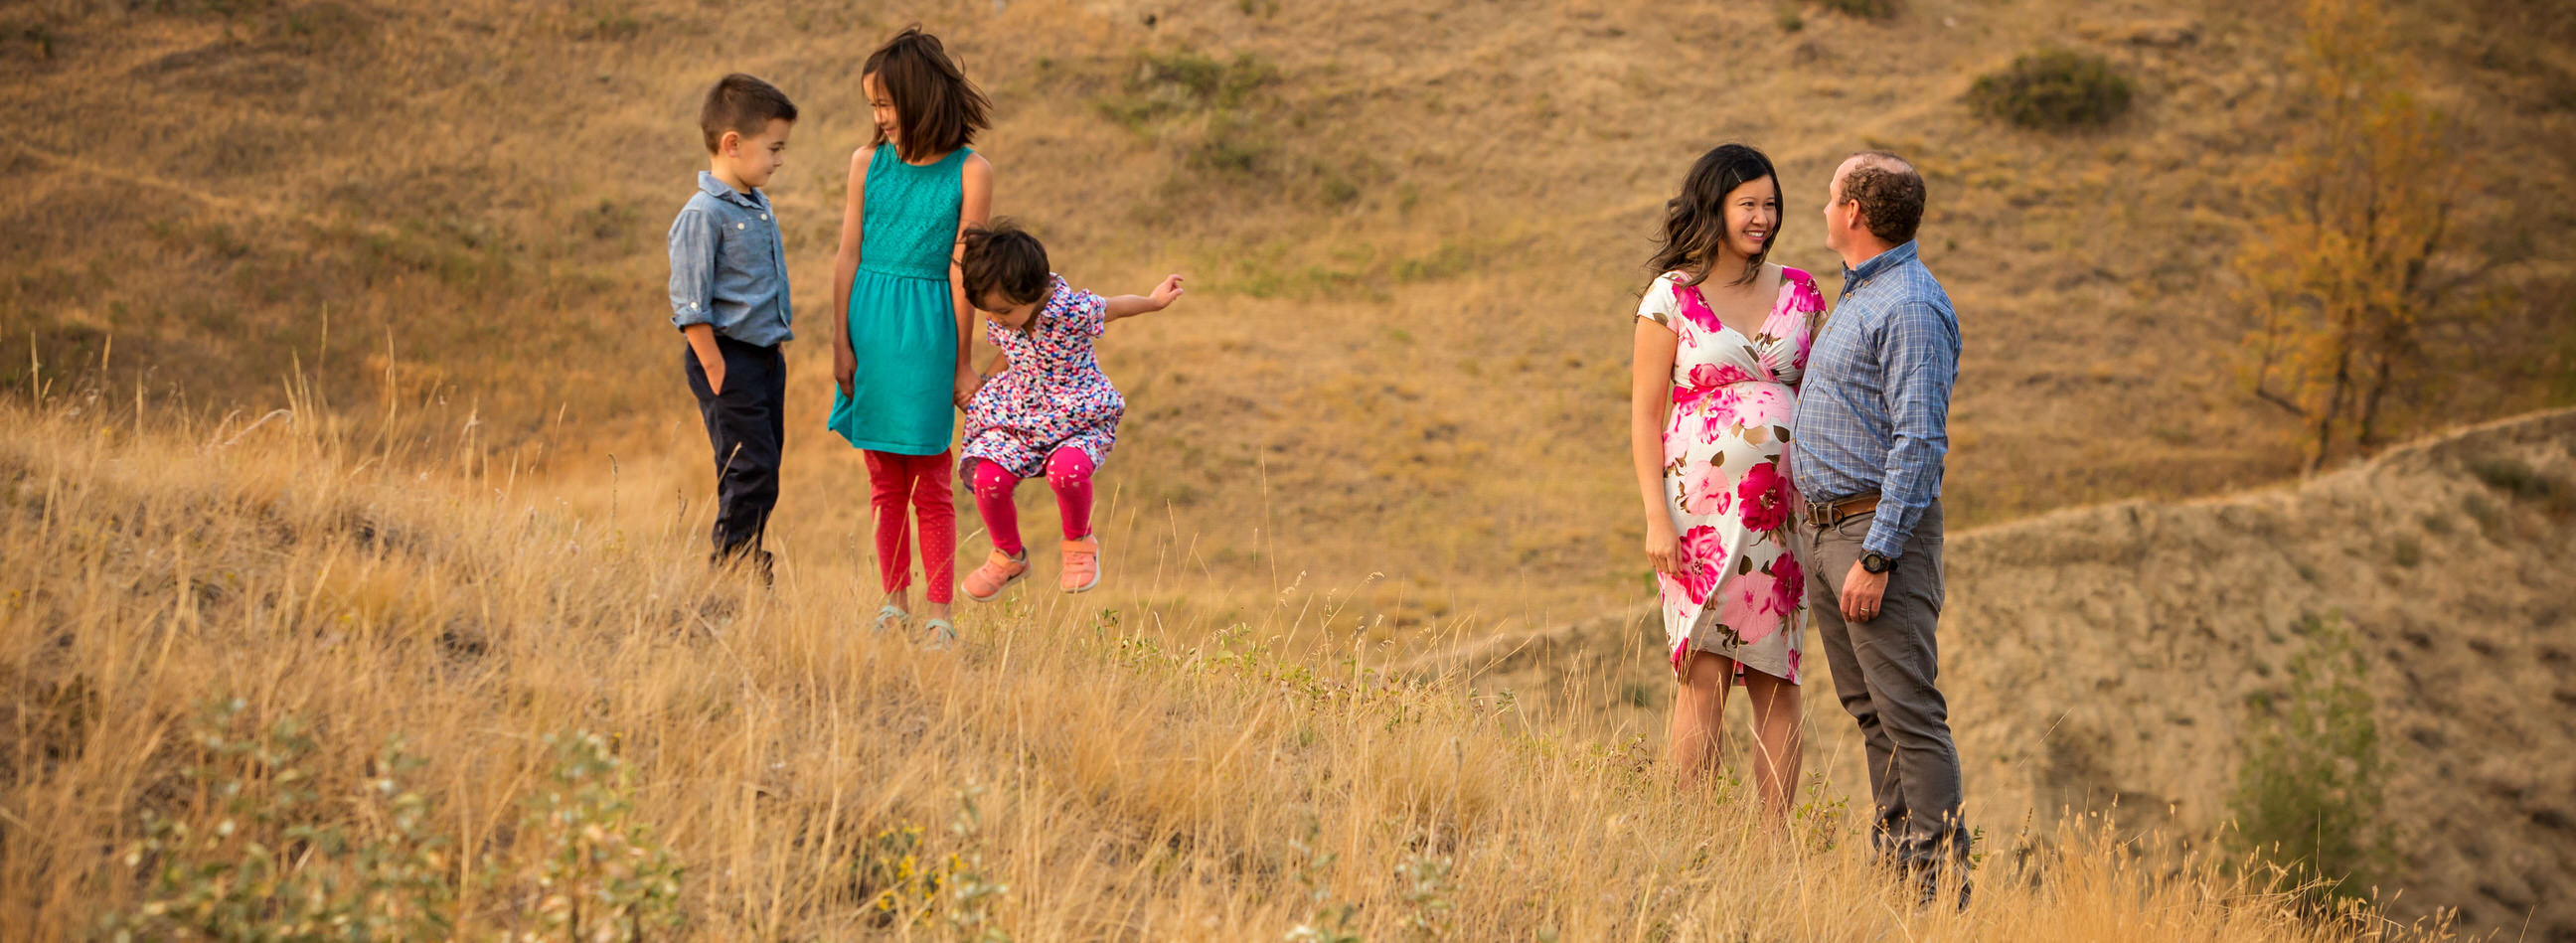 Melissa testimonial, family photo in coulees with child jumping